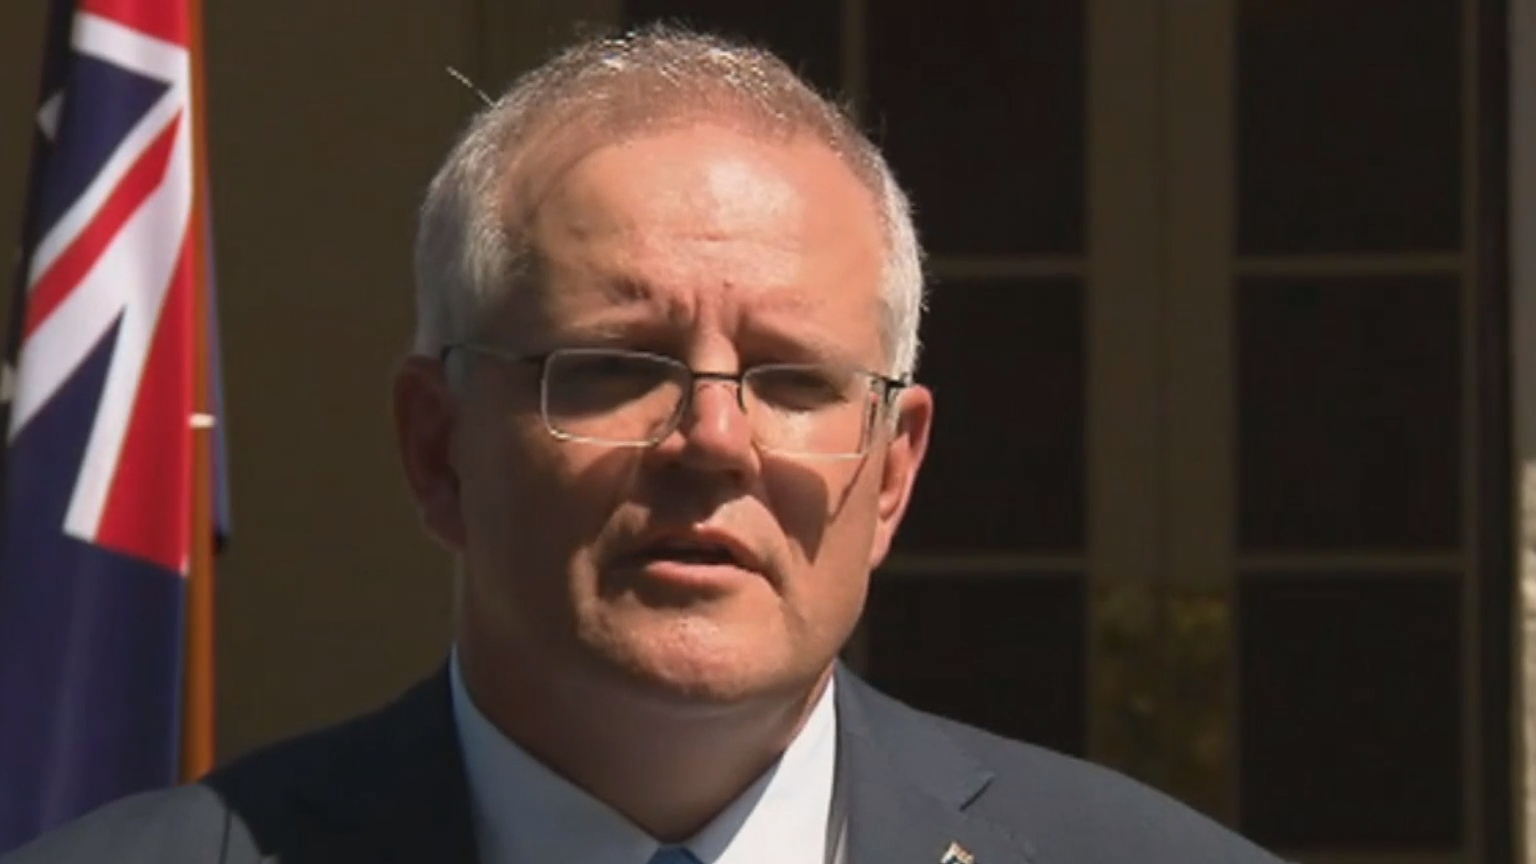 PM says cabinet minister 'categorically denies' historic sexual assault claims